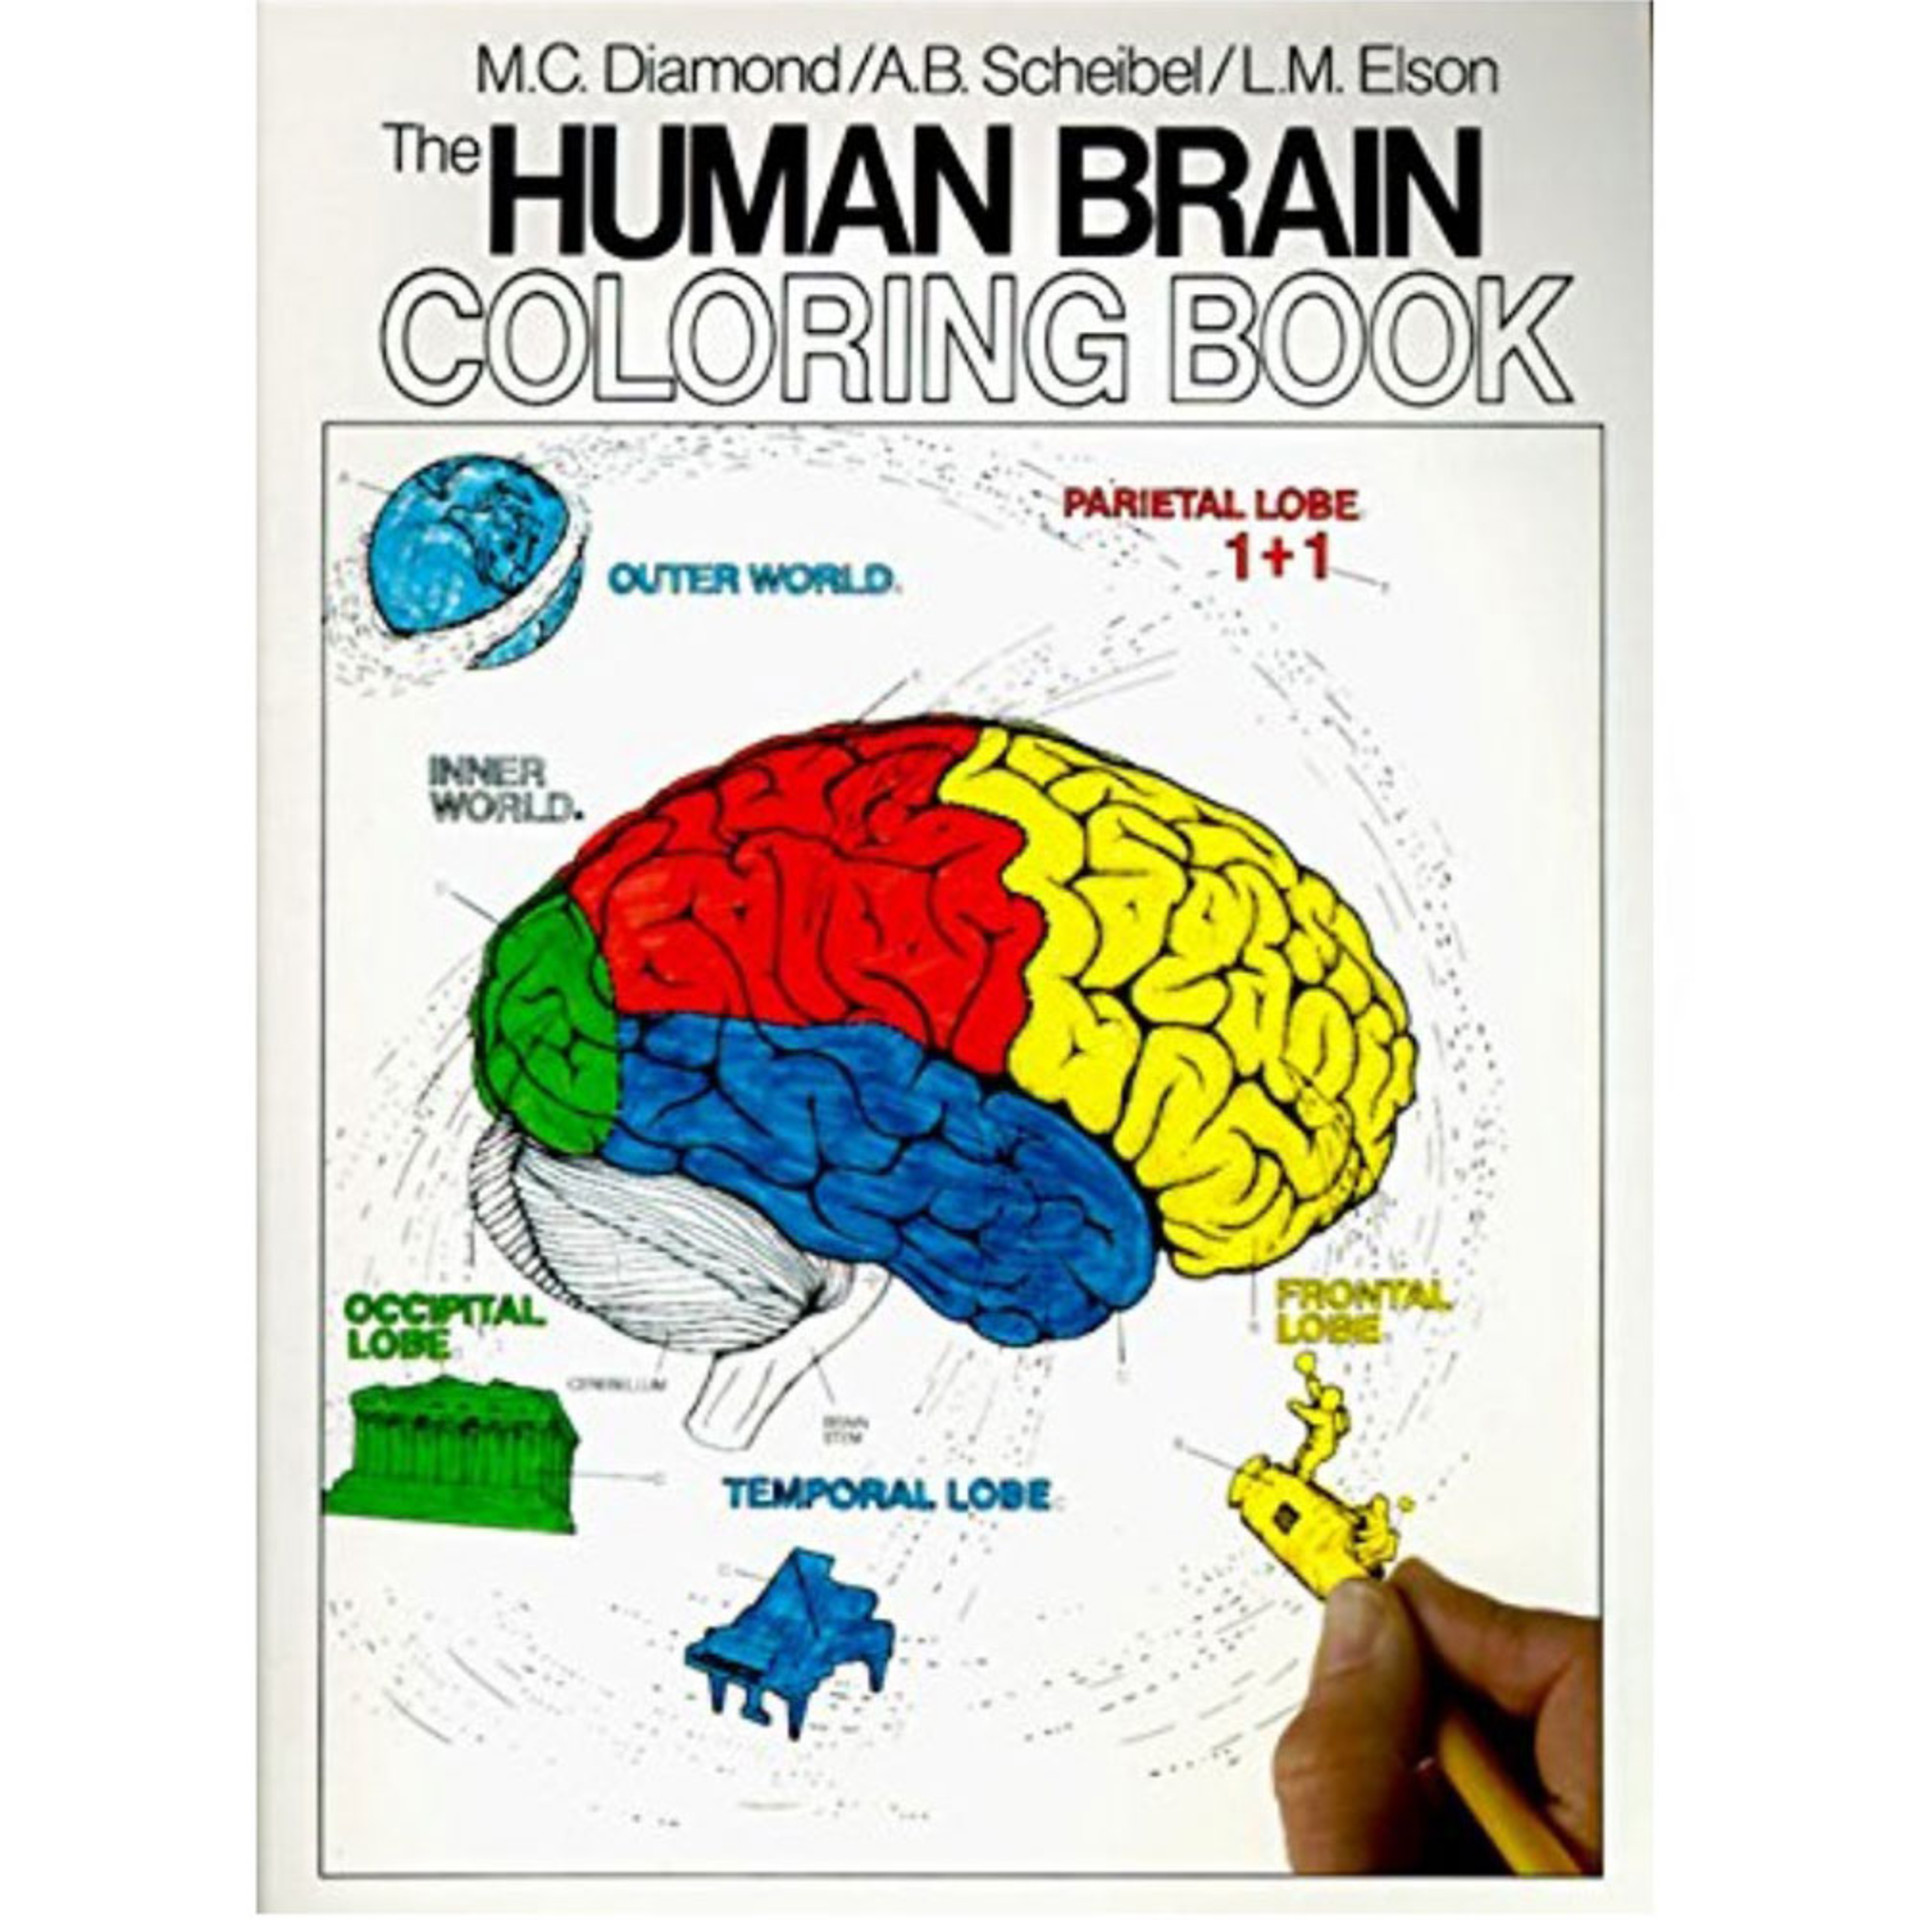 The Human Brian Coloring Book by M.C. Diamond, A.B. Scheibel, and L.M. Elson